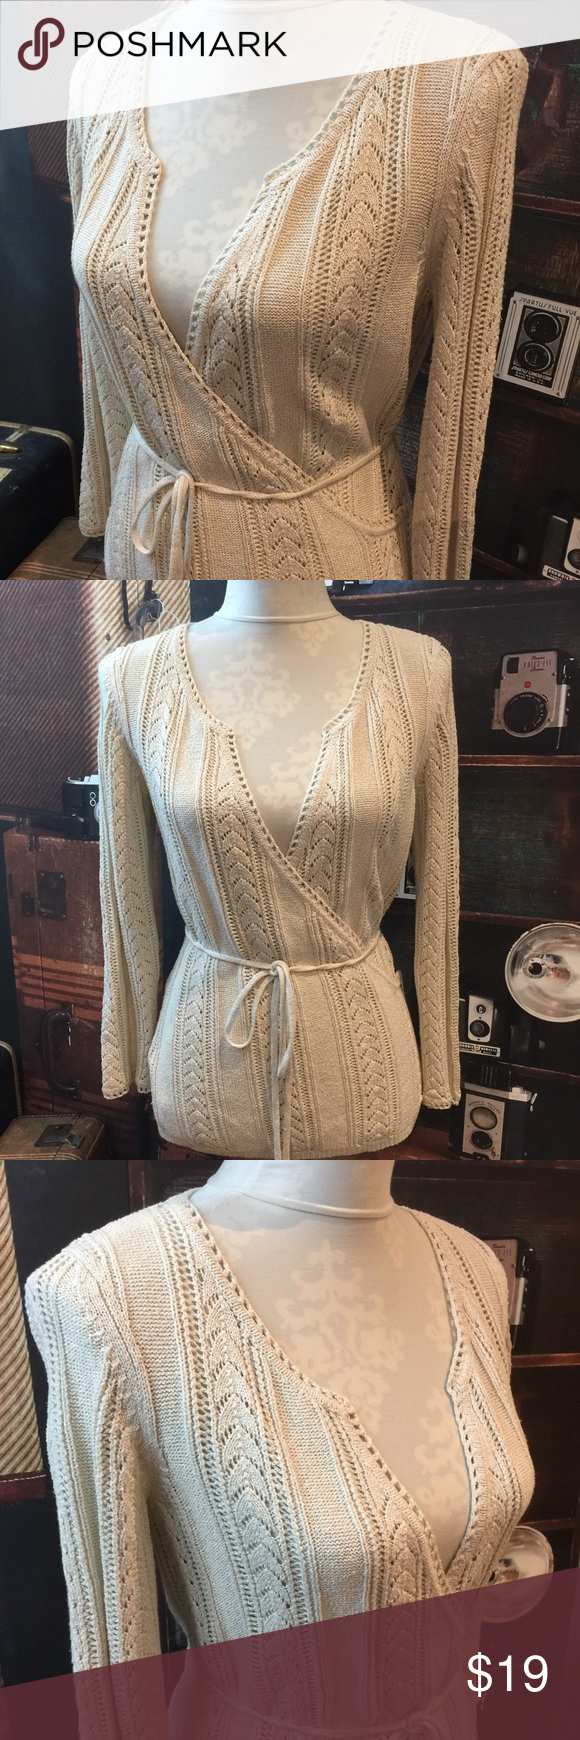 Selling this Anne Taylor Women's Sweater Wrap Knit Belted Silk on Poshmark! My username is: buttonberry. #shopmycloset #poshmark #fashion #shopping #style #forsale #Ann Taylor #Sweaters